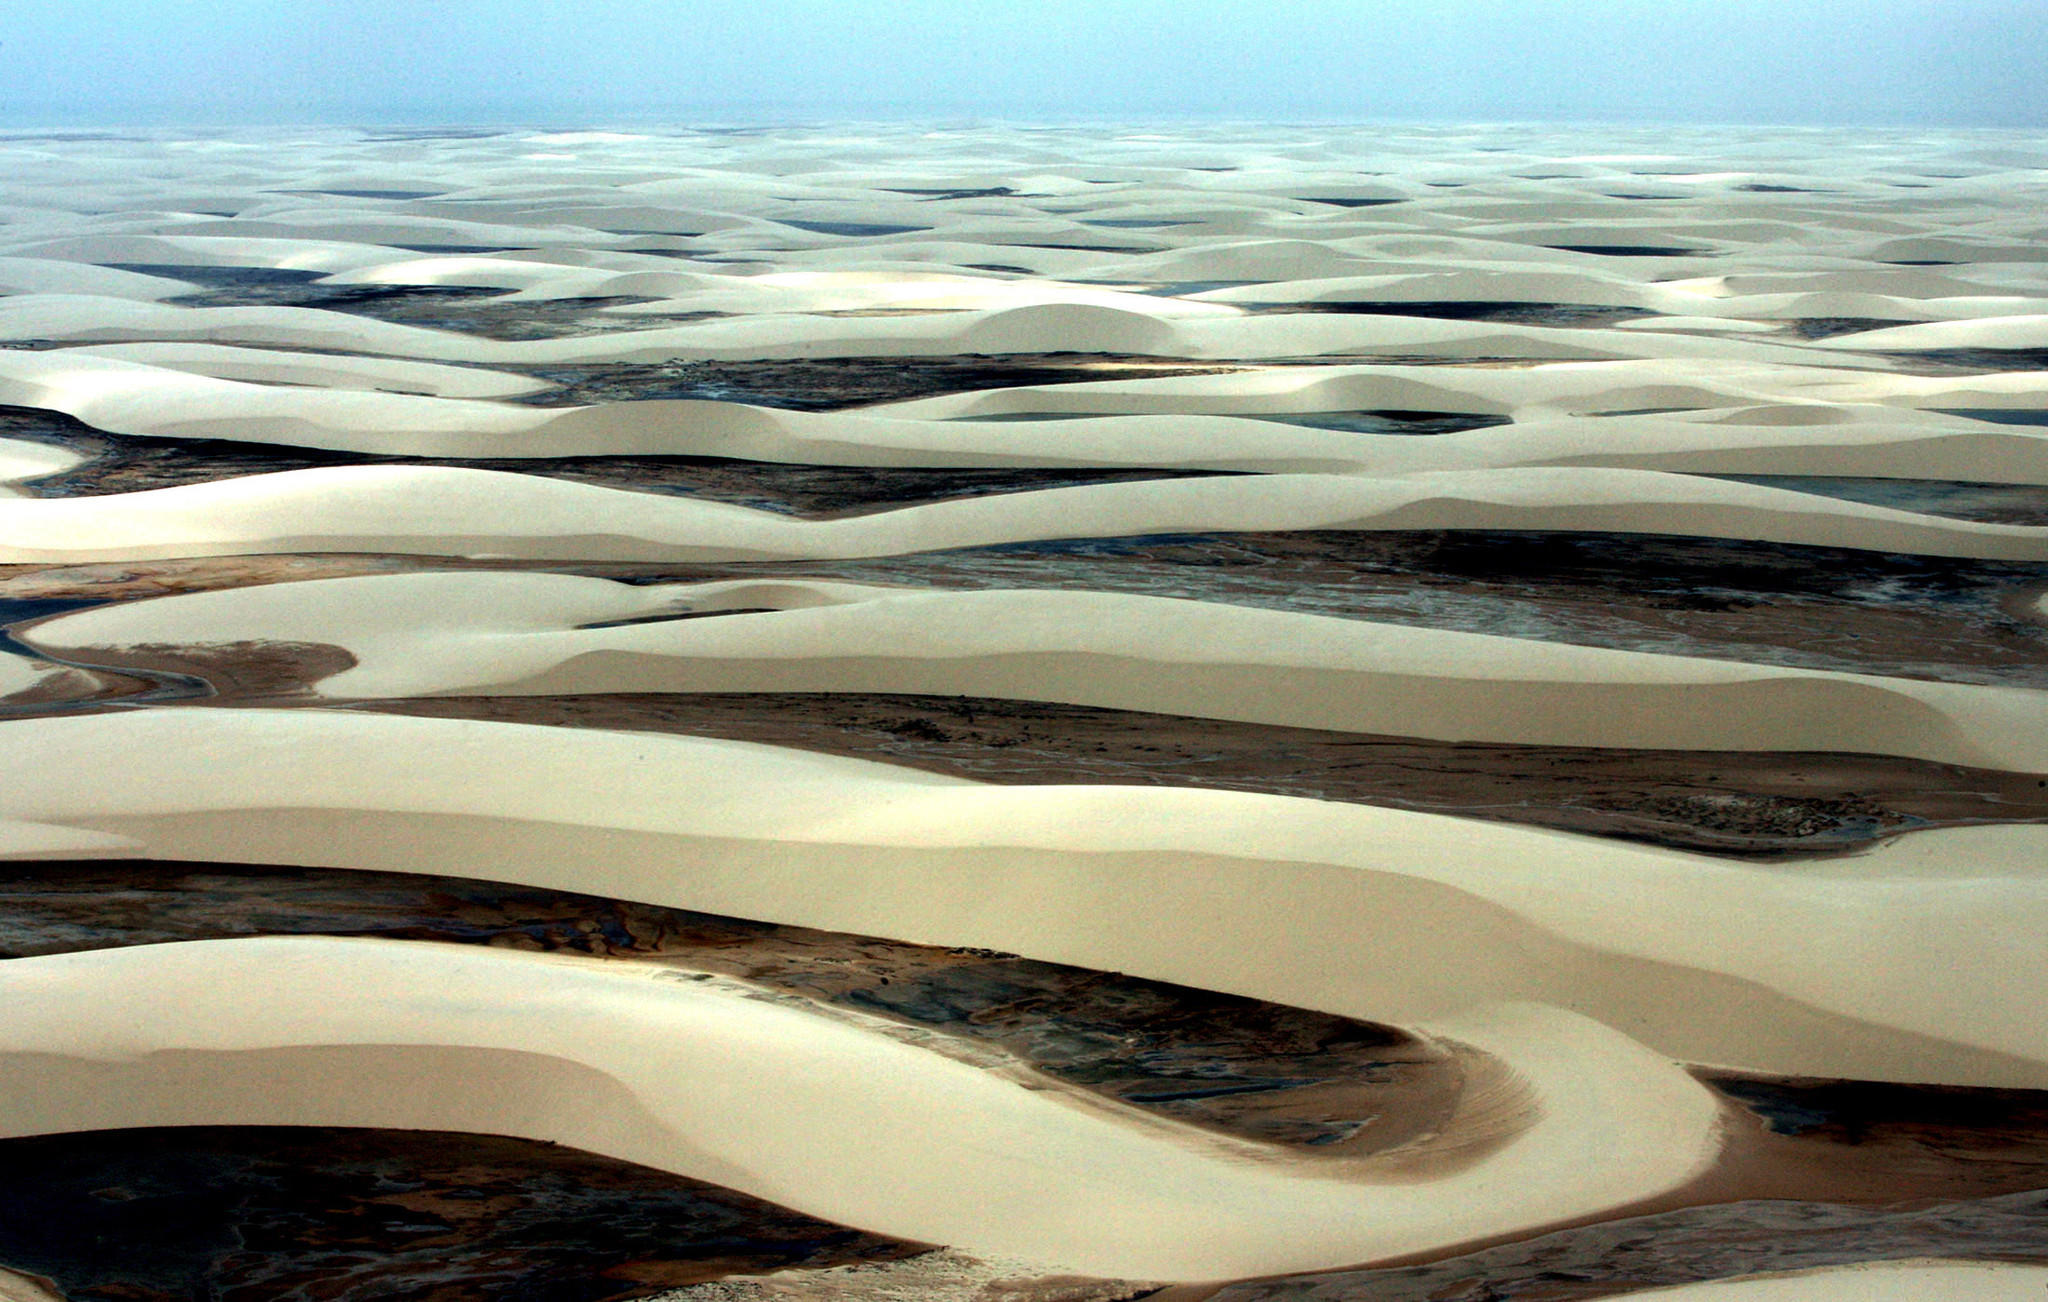 An overview of the alternating sand dunes and fresh water lakes of the Lencois Maranhenses national park, near the city of Sao Luis in northeastern Brazil.